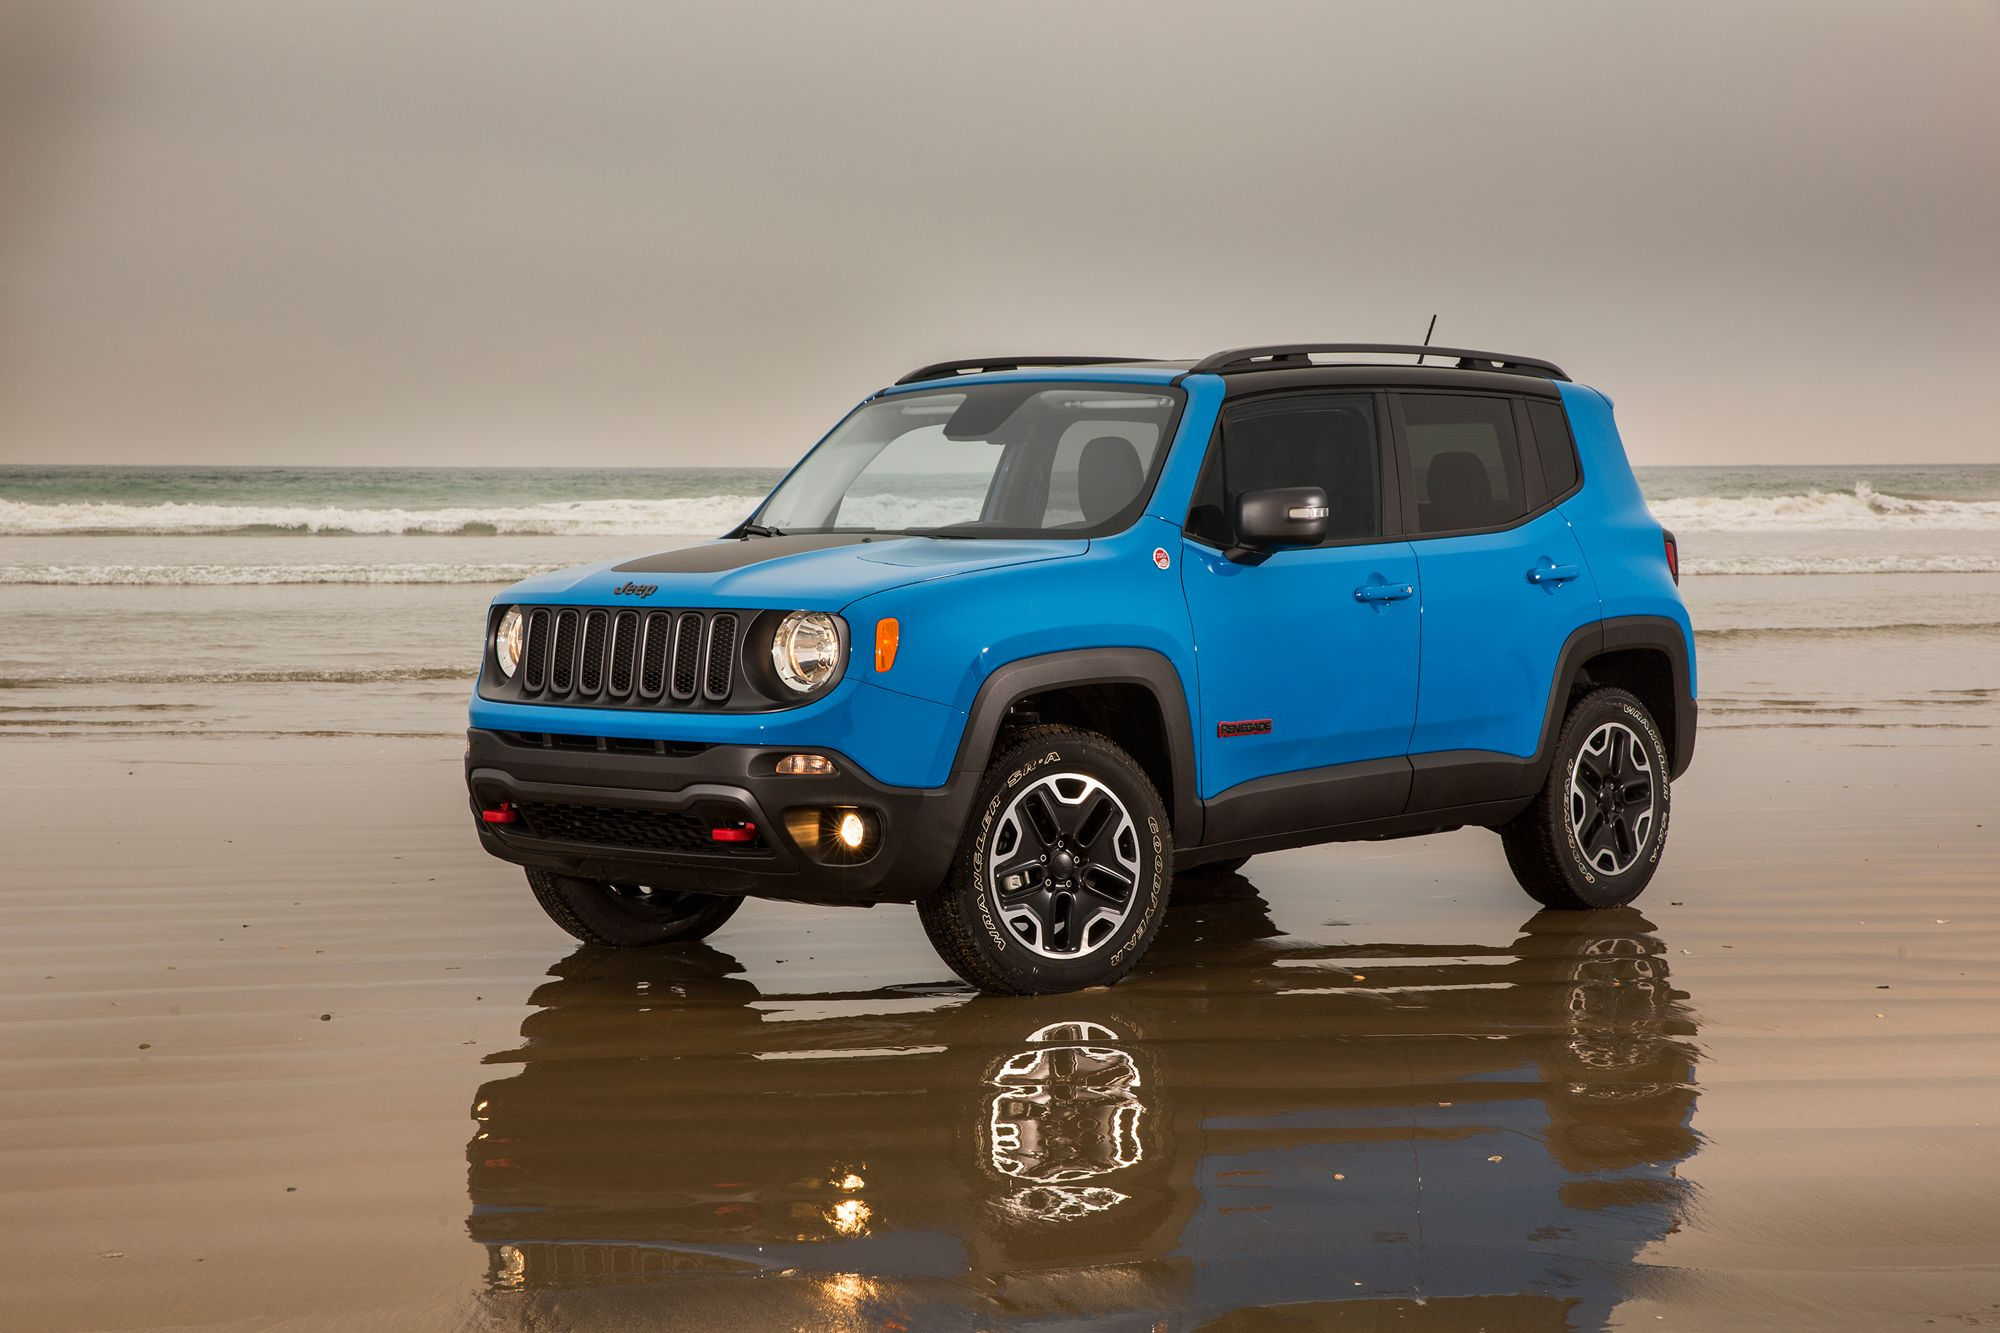 Pin By Tony Morones On Jeep Overland Jeep Renegade Jeep Renegade Trailhawk Jeep Trailhawk